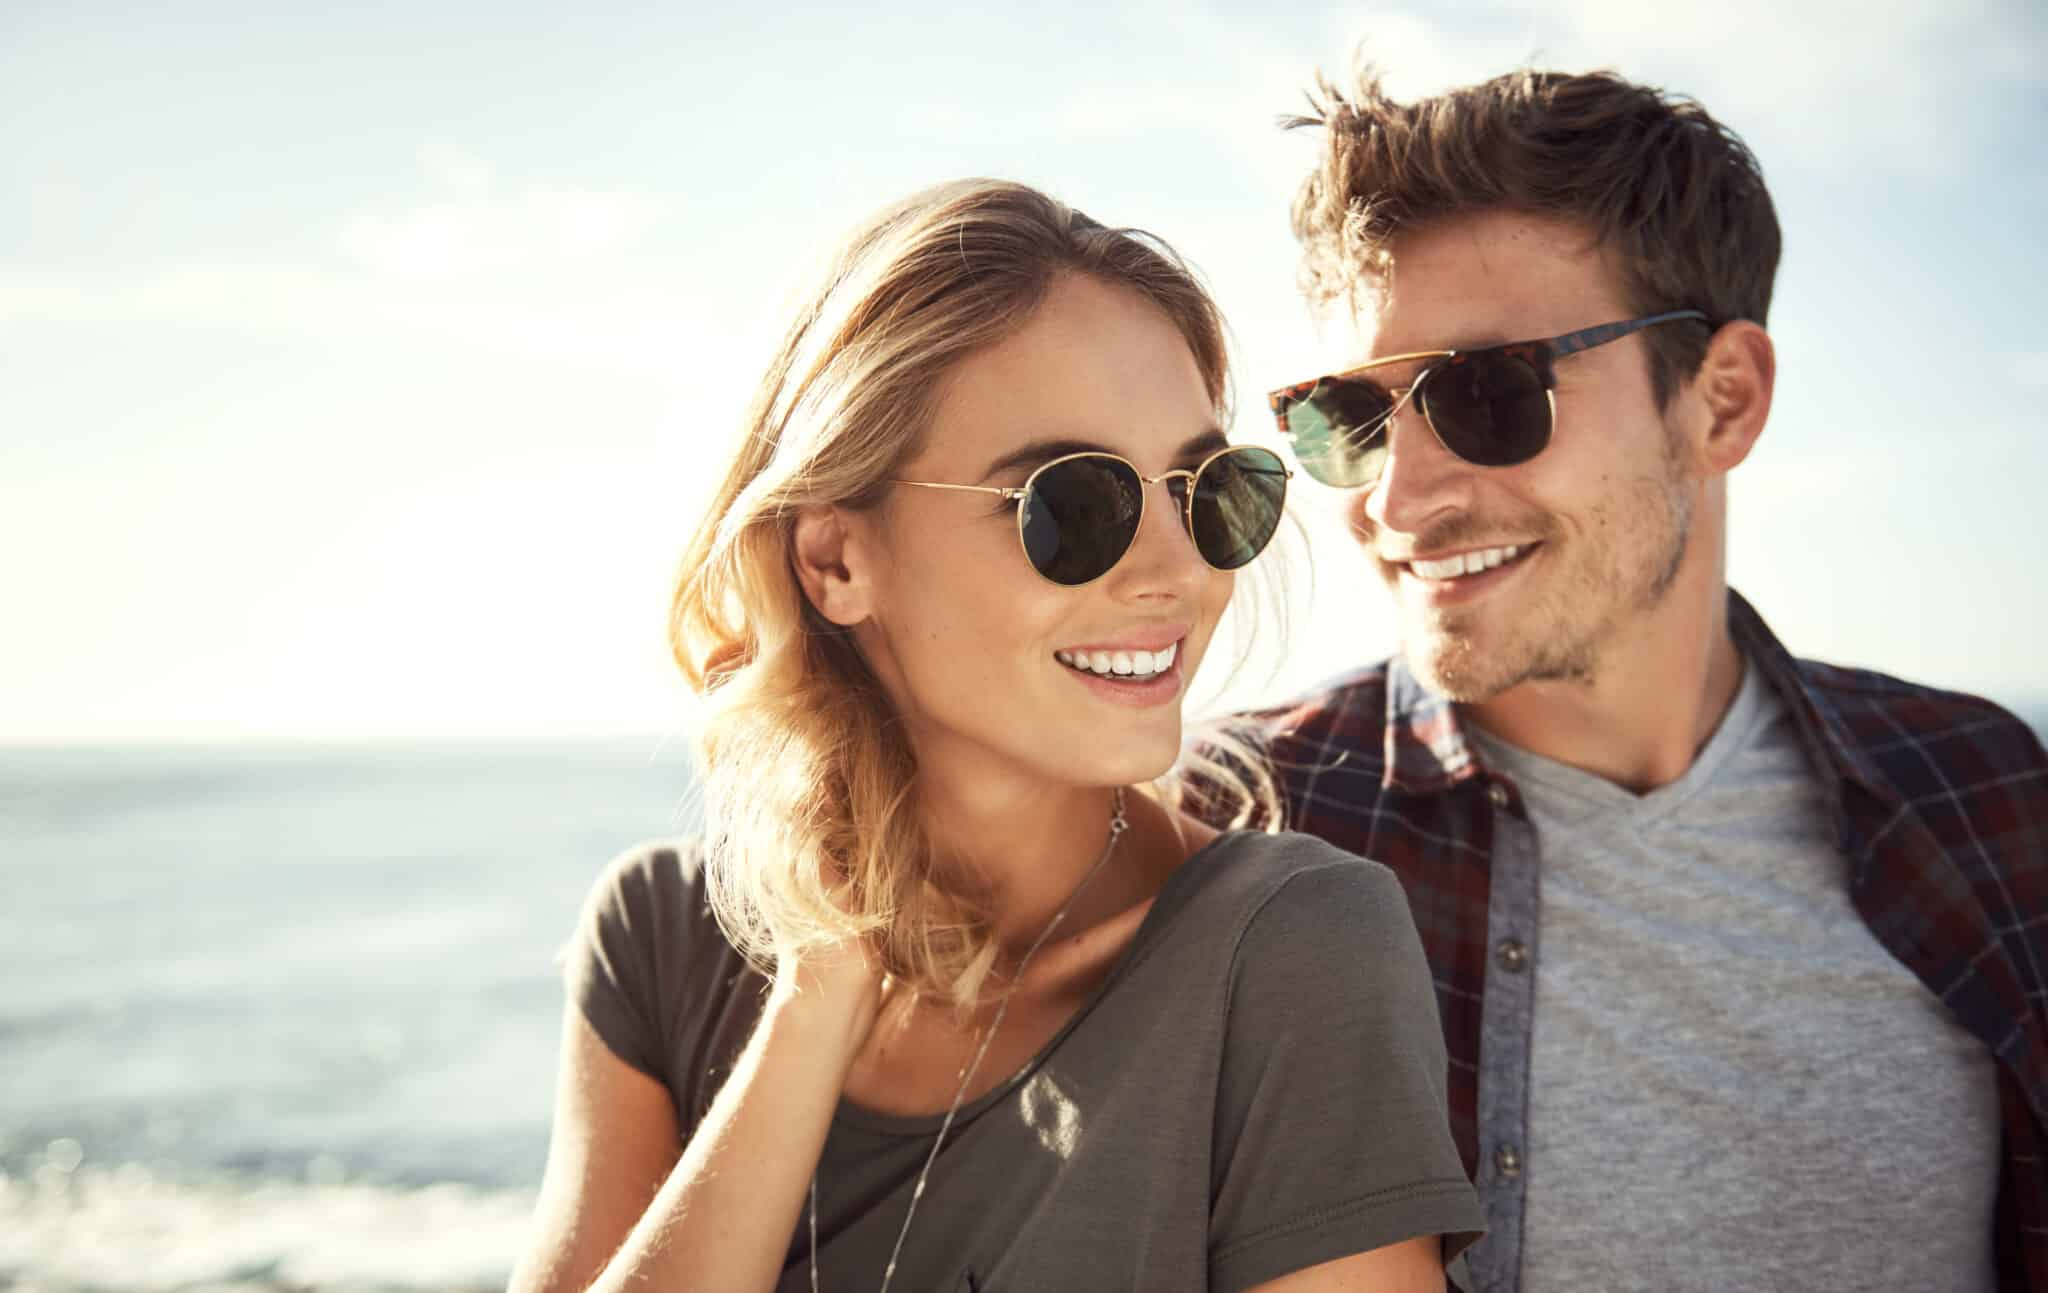 sunny smiles with vitamin D young couple in the sun wearing sunglasses